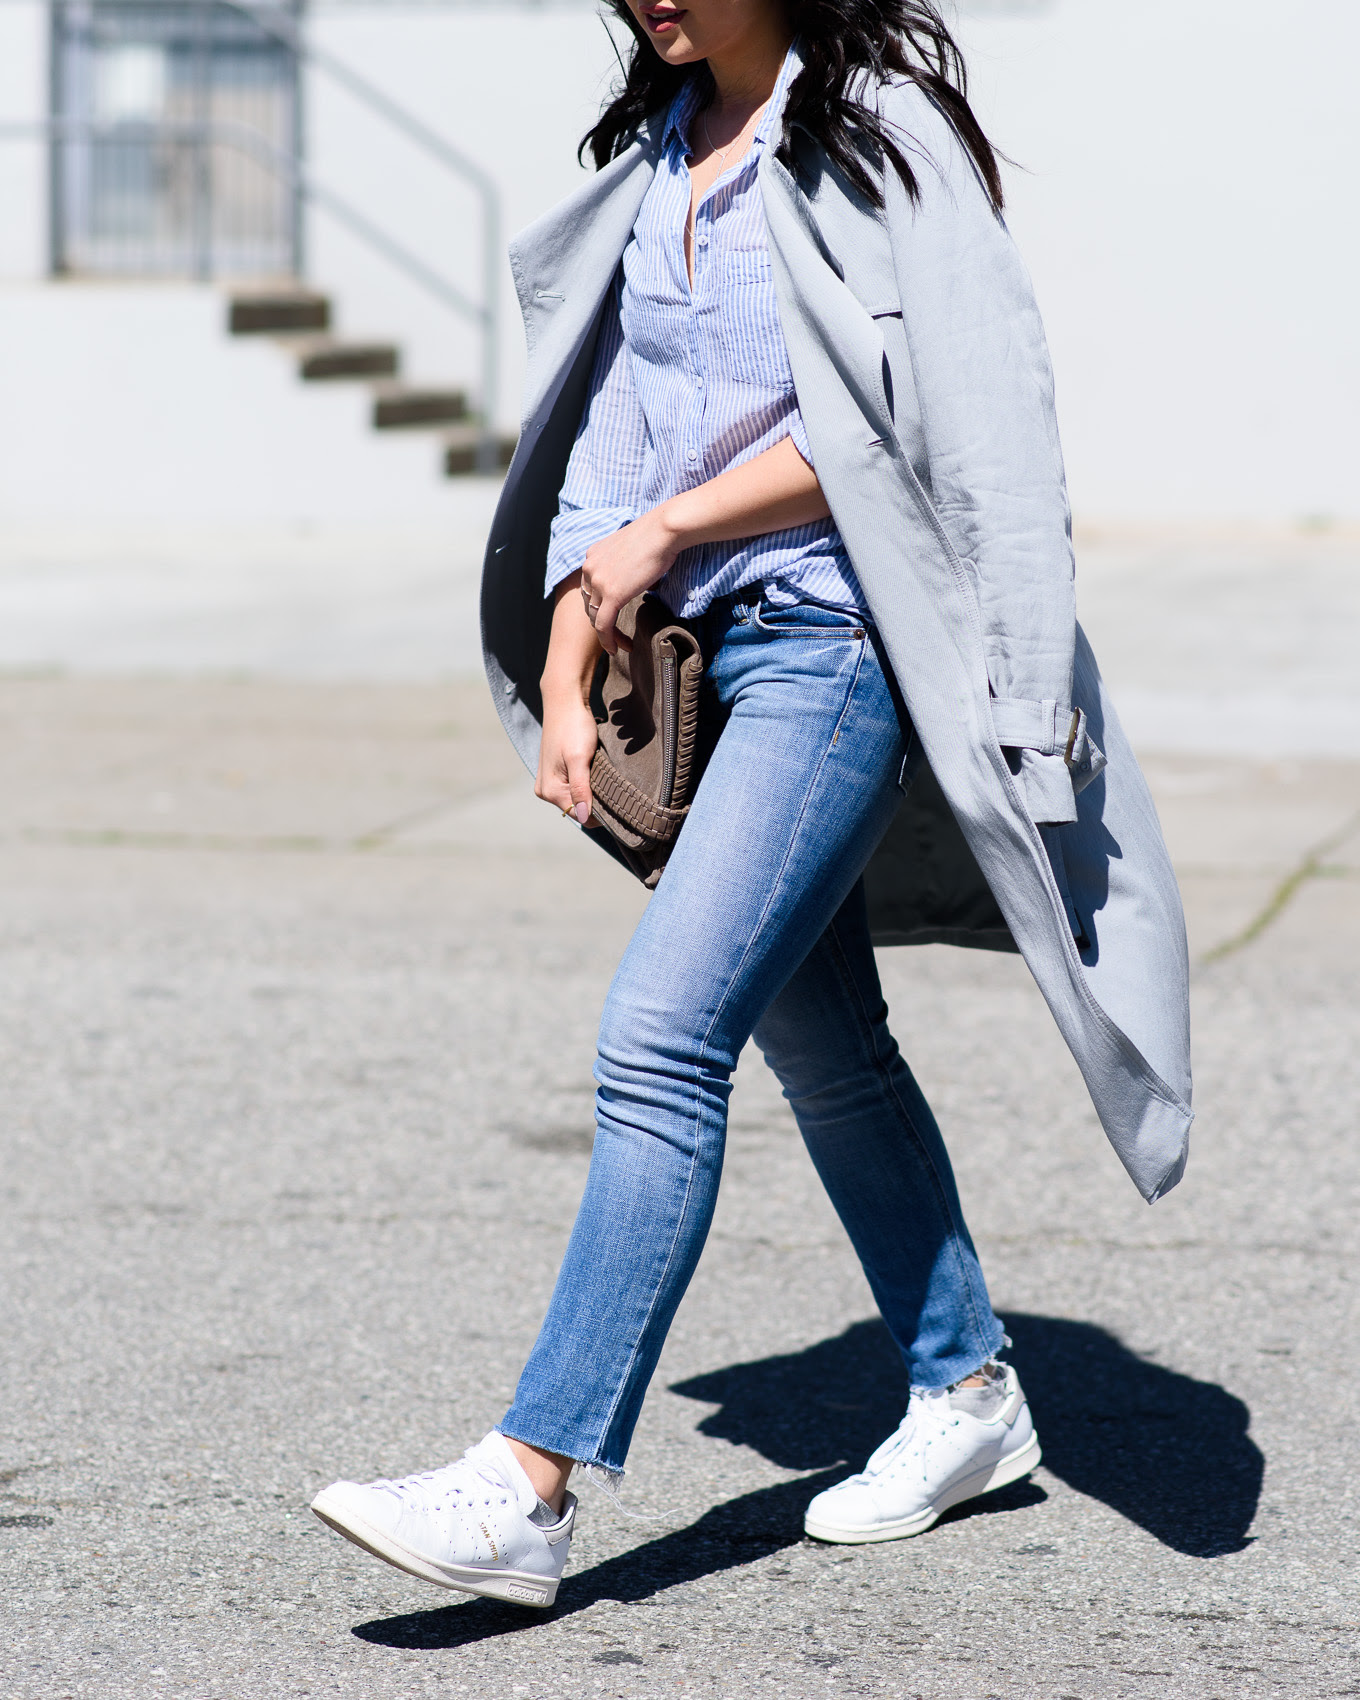 OOTD: Spring In San Francisco - The Fancy Pants Report  San